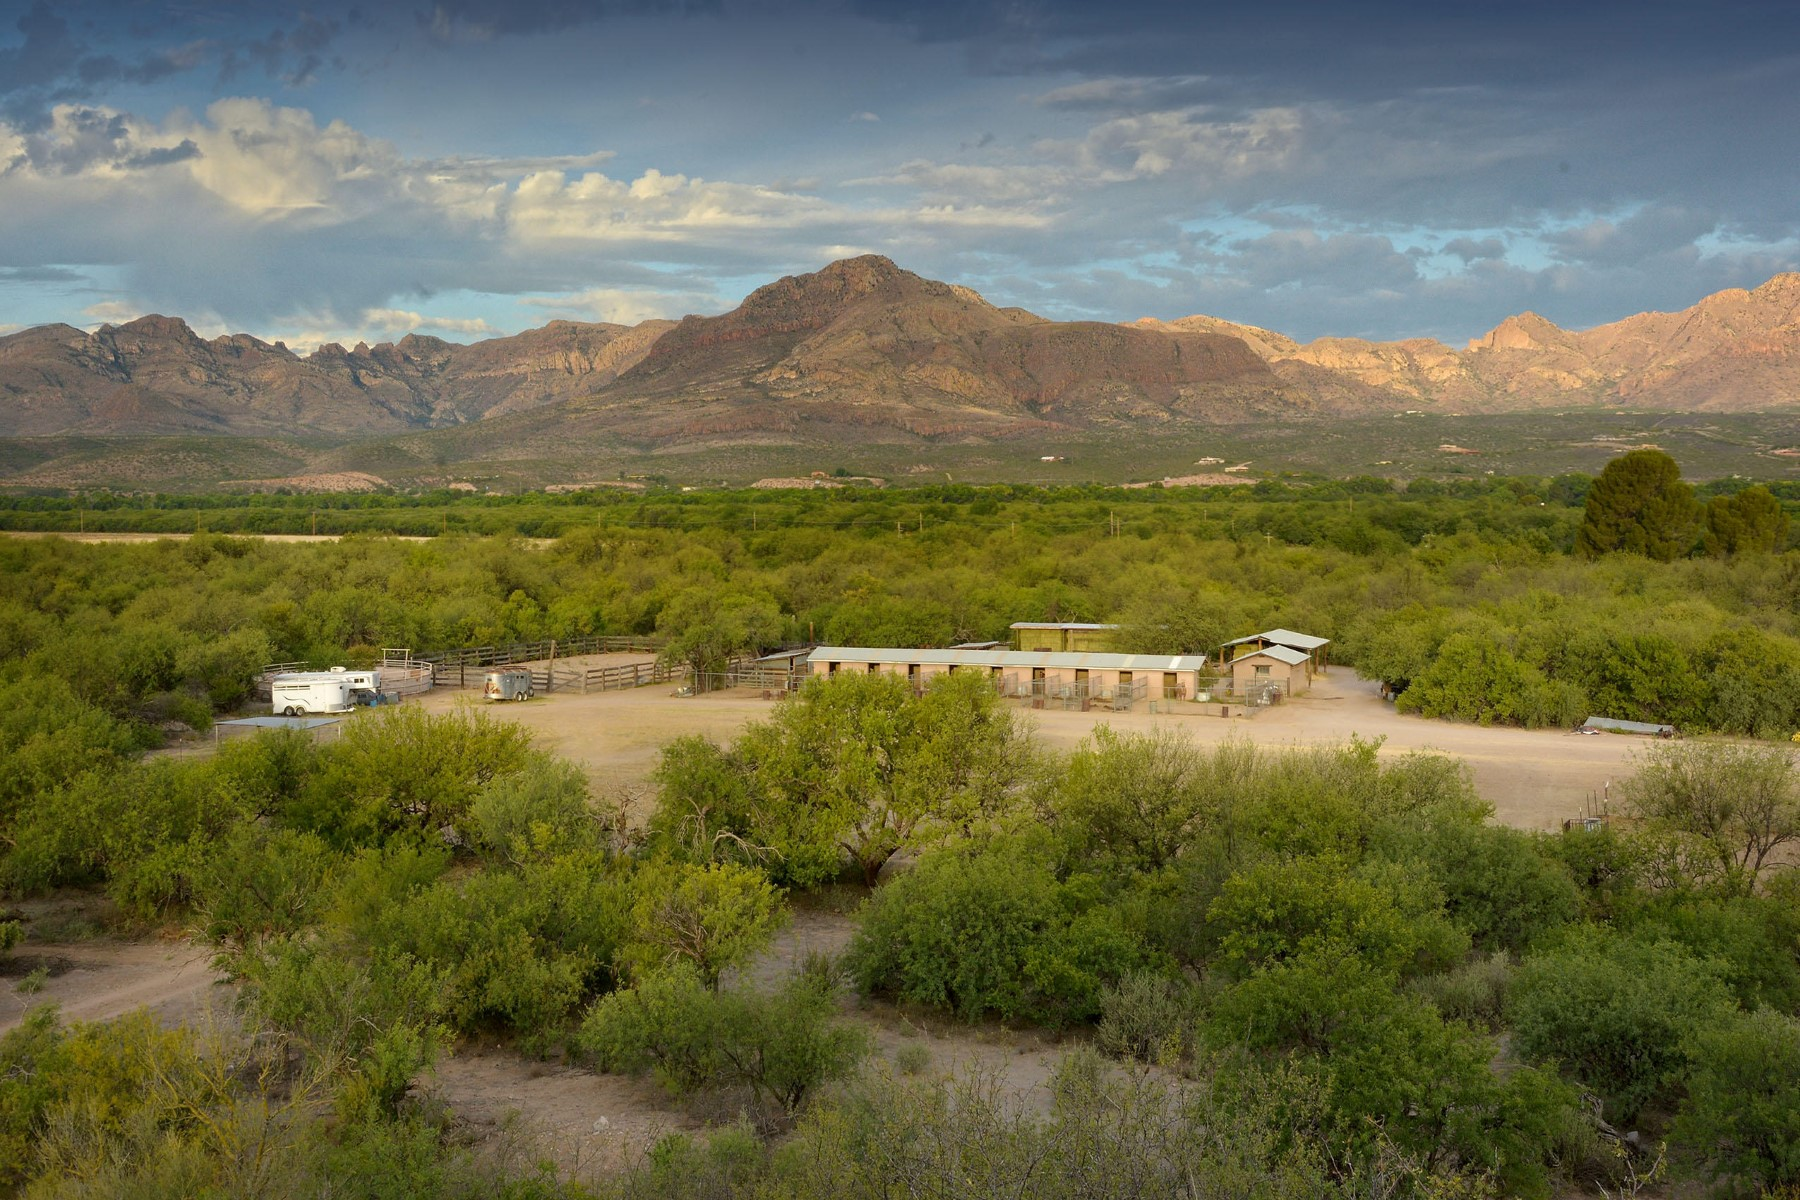 独户住宅 为 销售 在 Classic South Arizona Ranch situated on 91.7 acres near Tubac 87 CLARK CROSSING Road Tubac, 亚利桑那州 85646 美国